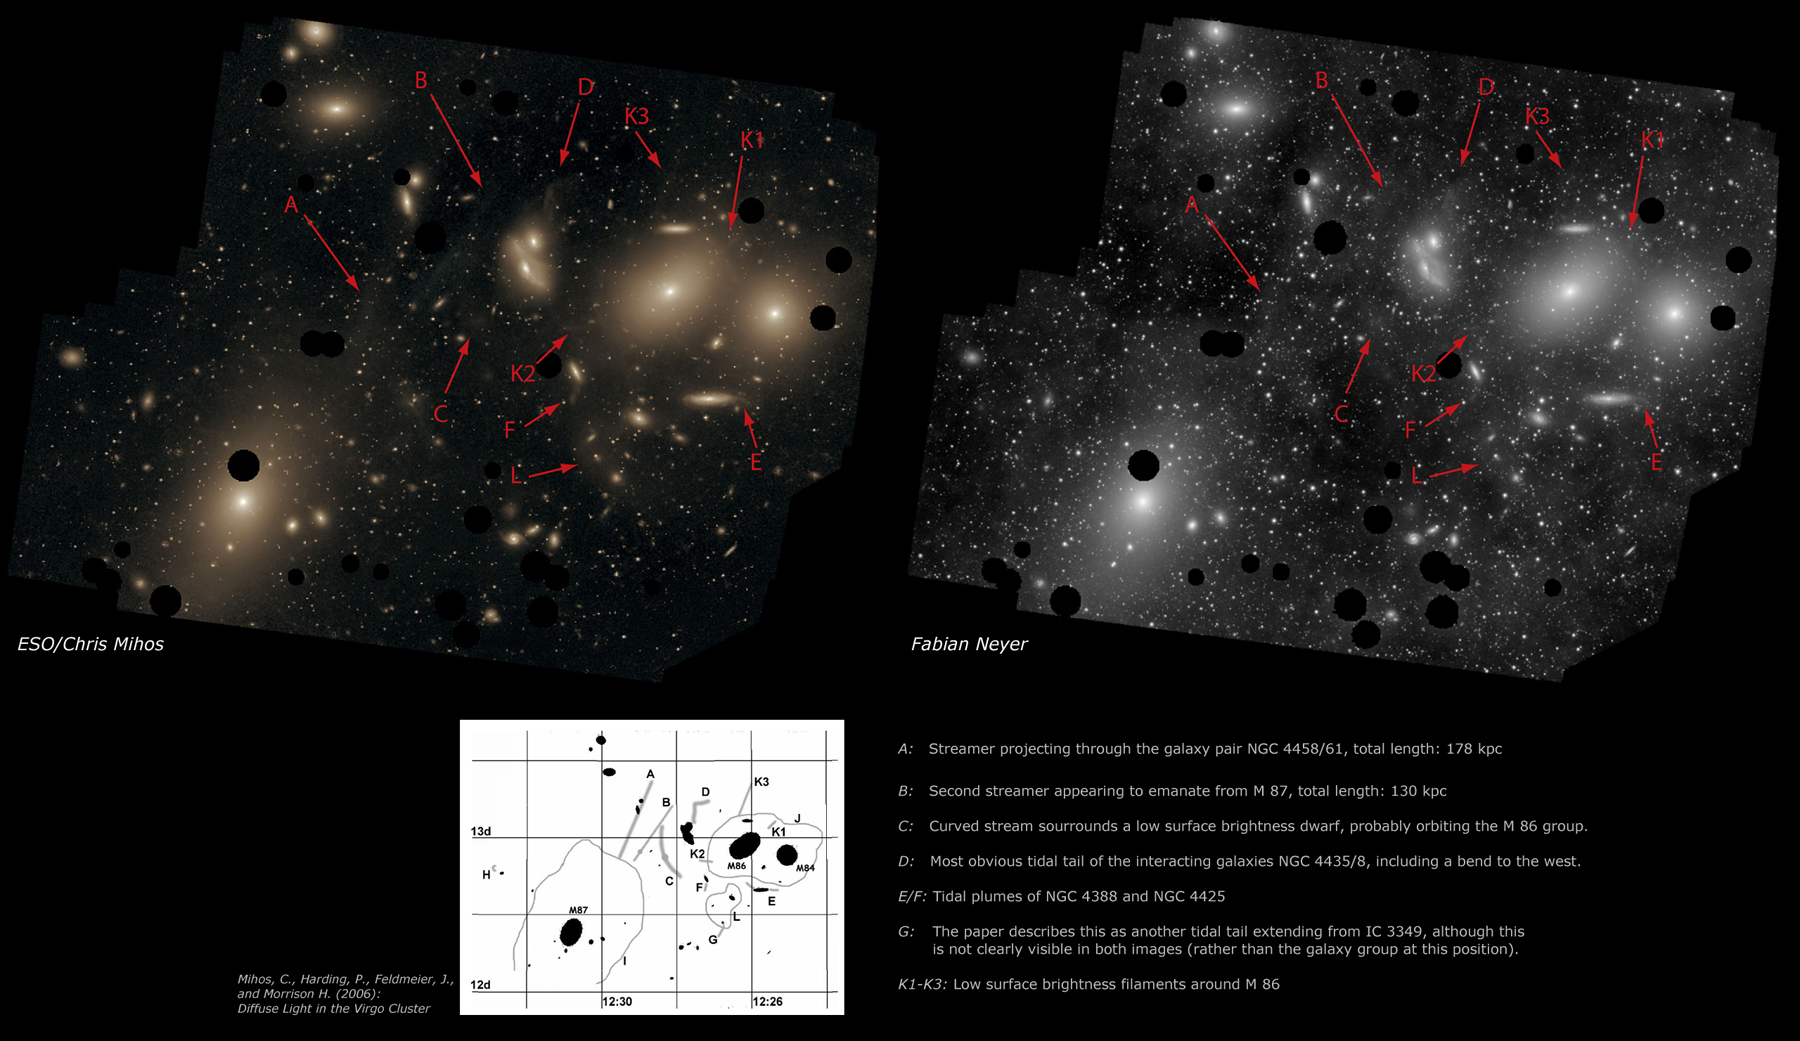 Virgo Cluster ESO comparison